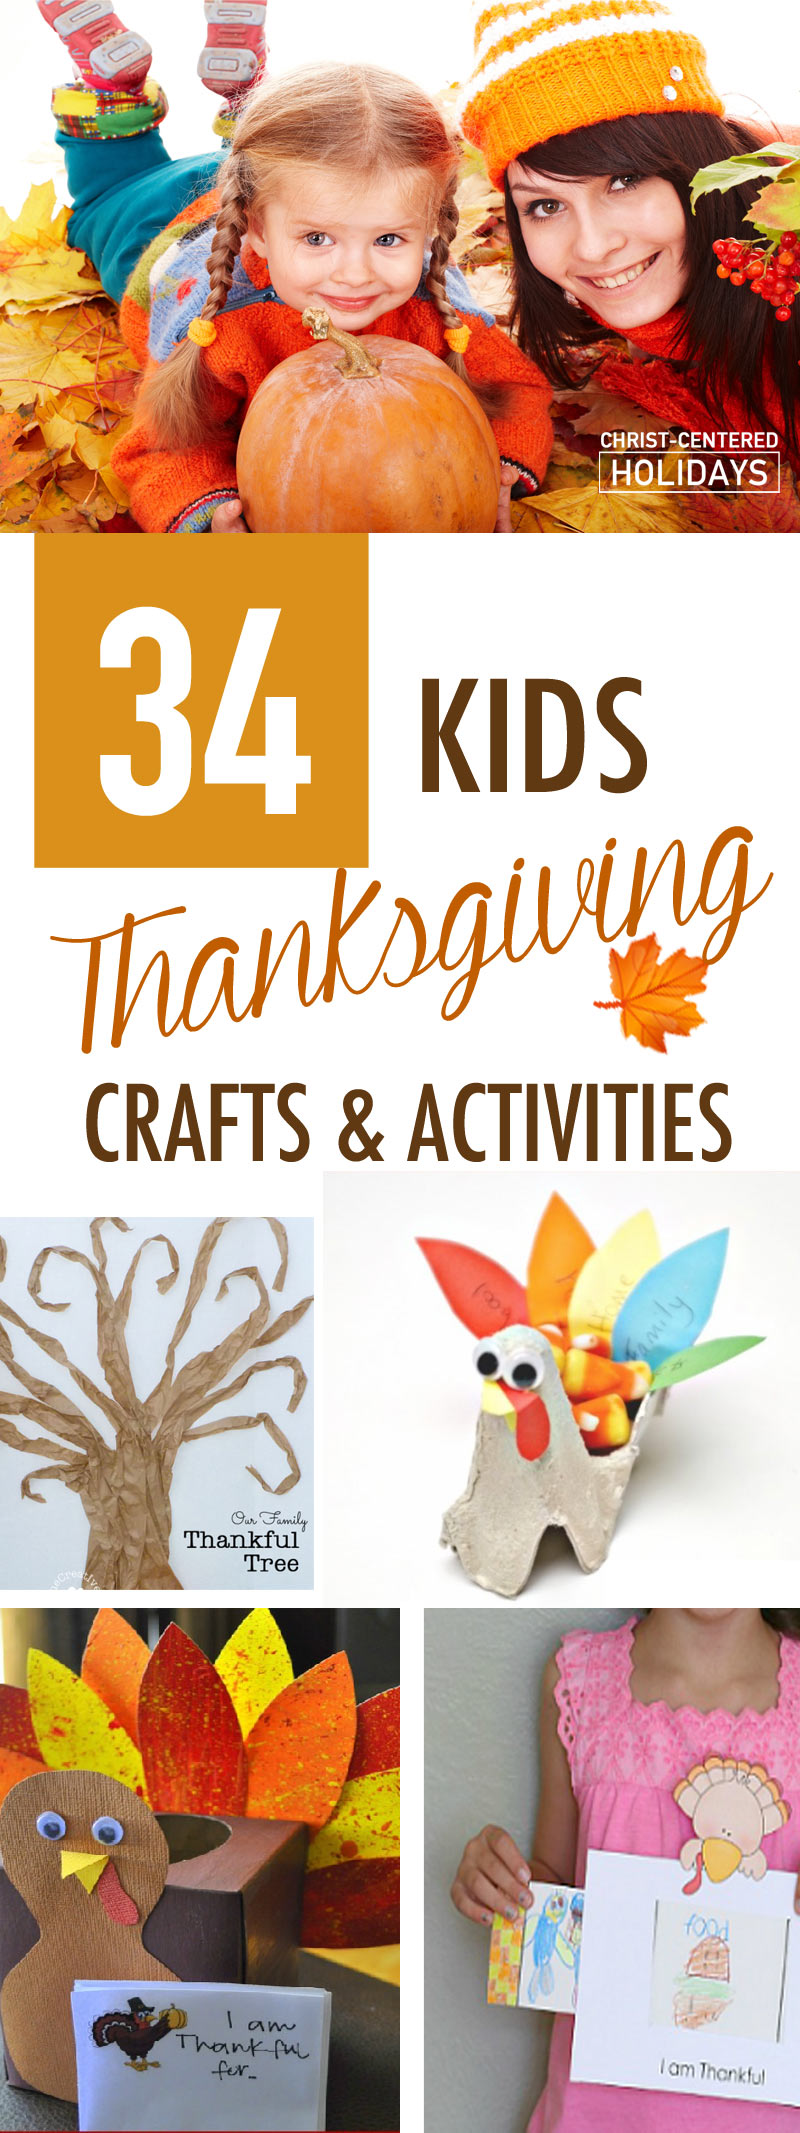 Wow! Check out this awesome list of Thanksgiving crafts for kids, plus a list of great Thanksgiving books for kids, awesome Thanksgiving activities (including a Thankful Tree printable) and even links to free Thanksgiving Bible lessons that will teach your family the importance of gratitude. #thanksgiving #thanksgivingcraftsforkids #thanksgivingcrafts